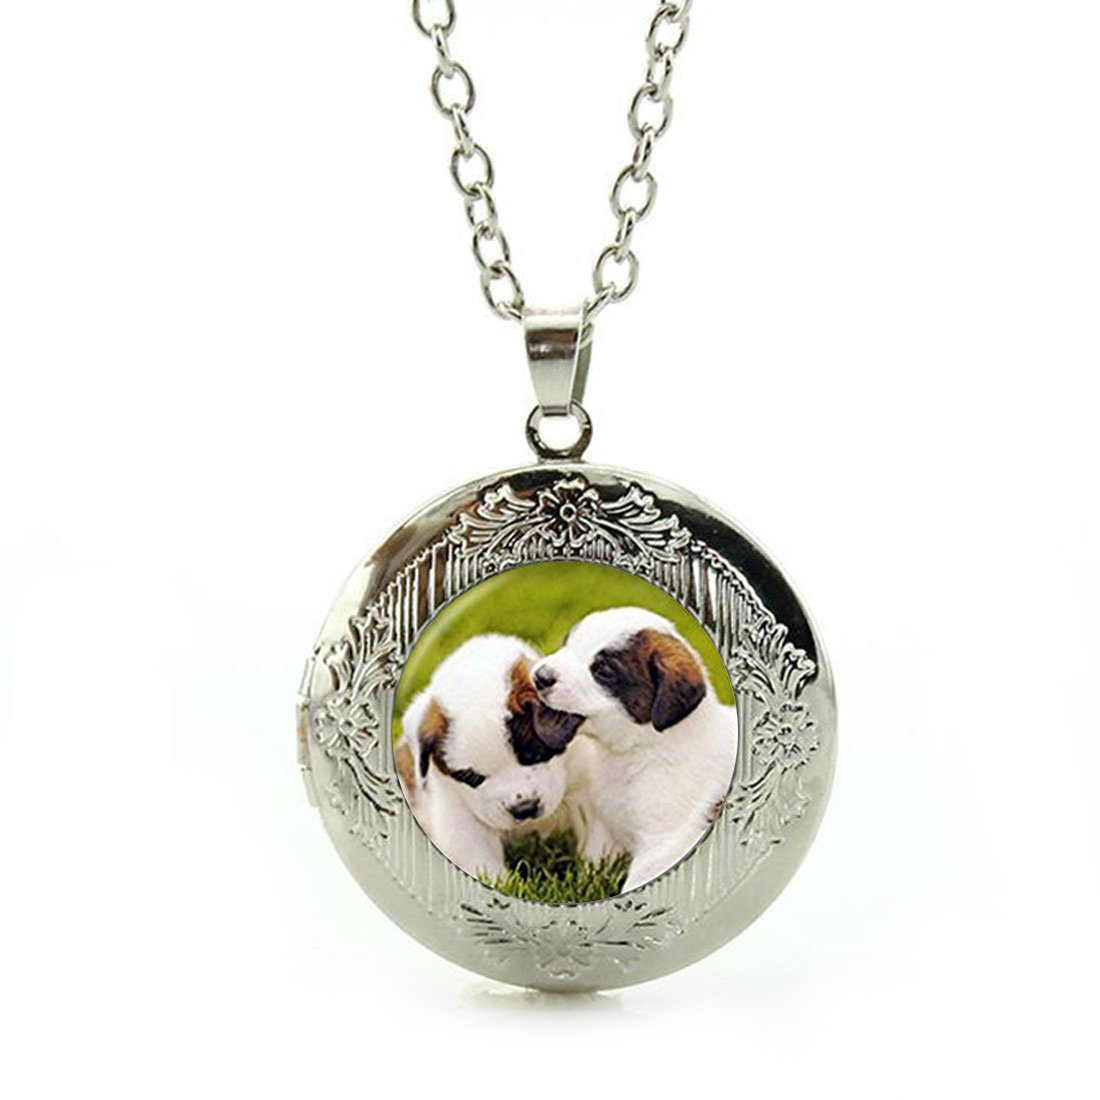 Women's Custom Locket Closure Pendant Necklace Puppy Dog Included Free Silver Chain, Best Gift Set LooPoP KF-LSZBS-1143